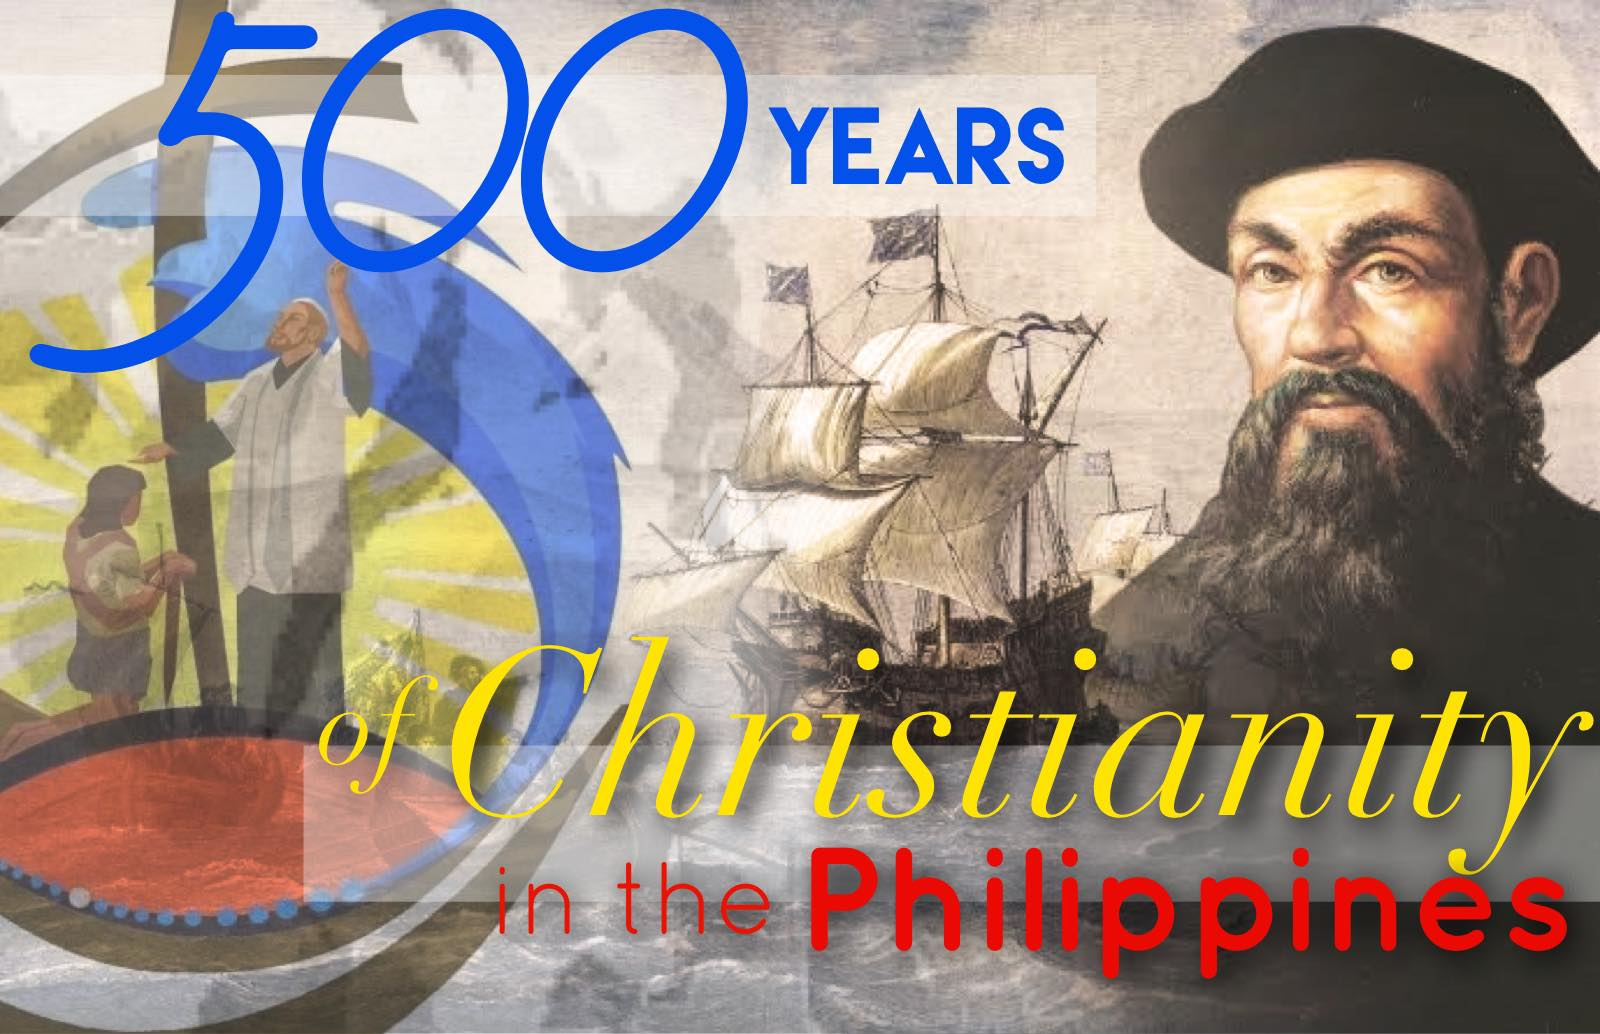 Message of the FIS Provincial on the 500 Years of Christianity in the Philippines